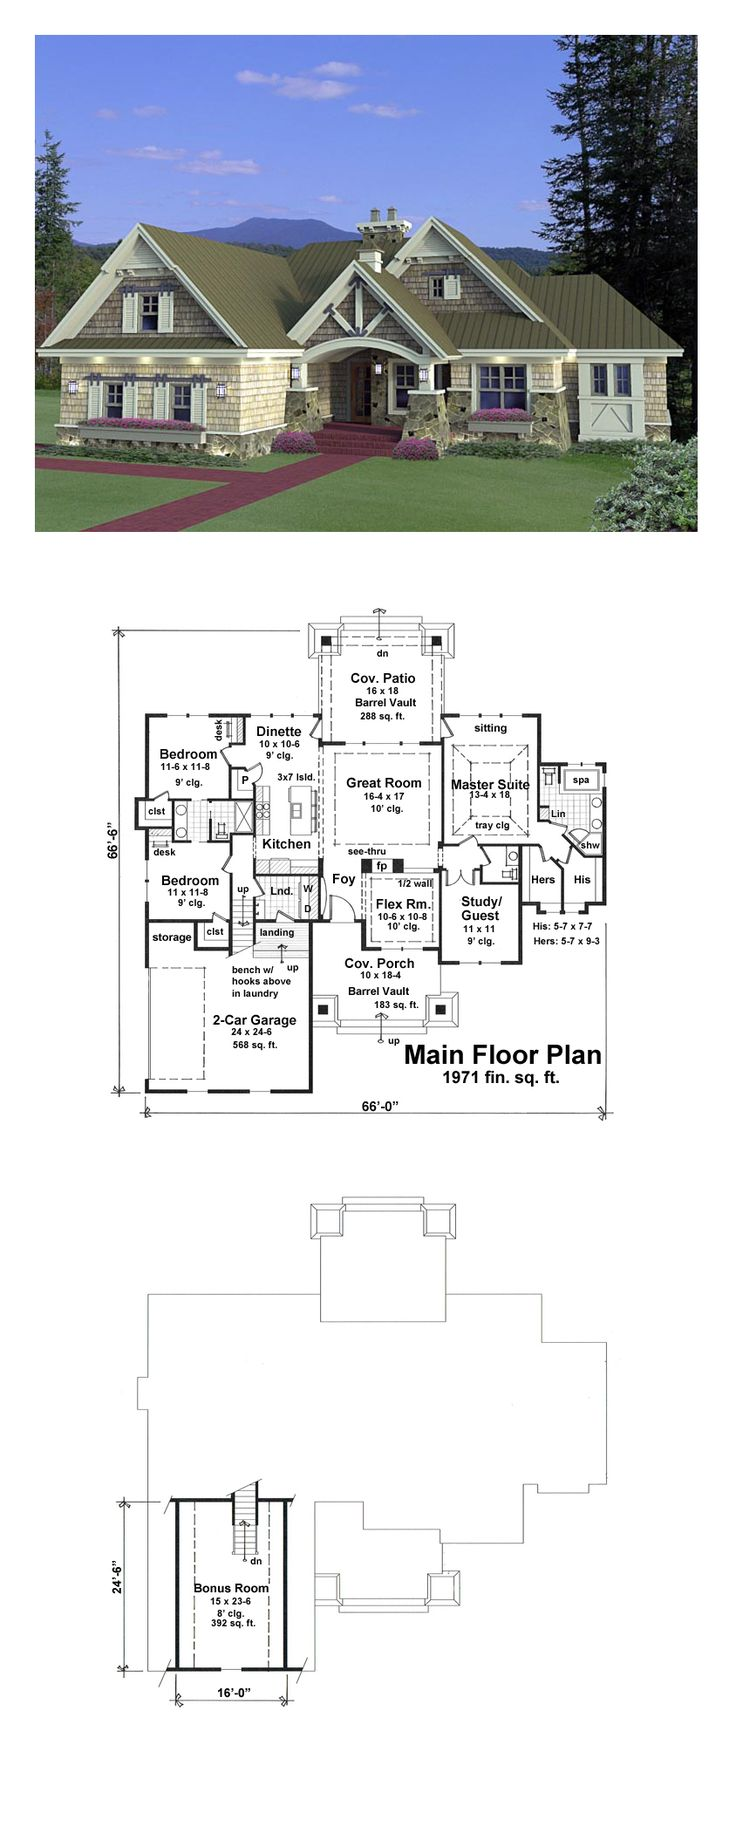 5 Bedroom 4 Bathroom House Plan Unforgettable New in raleigh kitchen cabinets Home Decorating